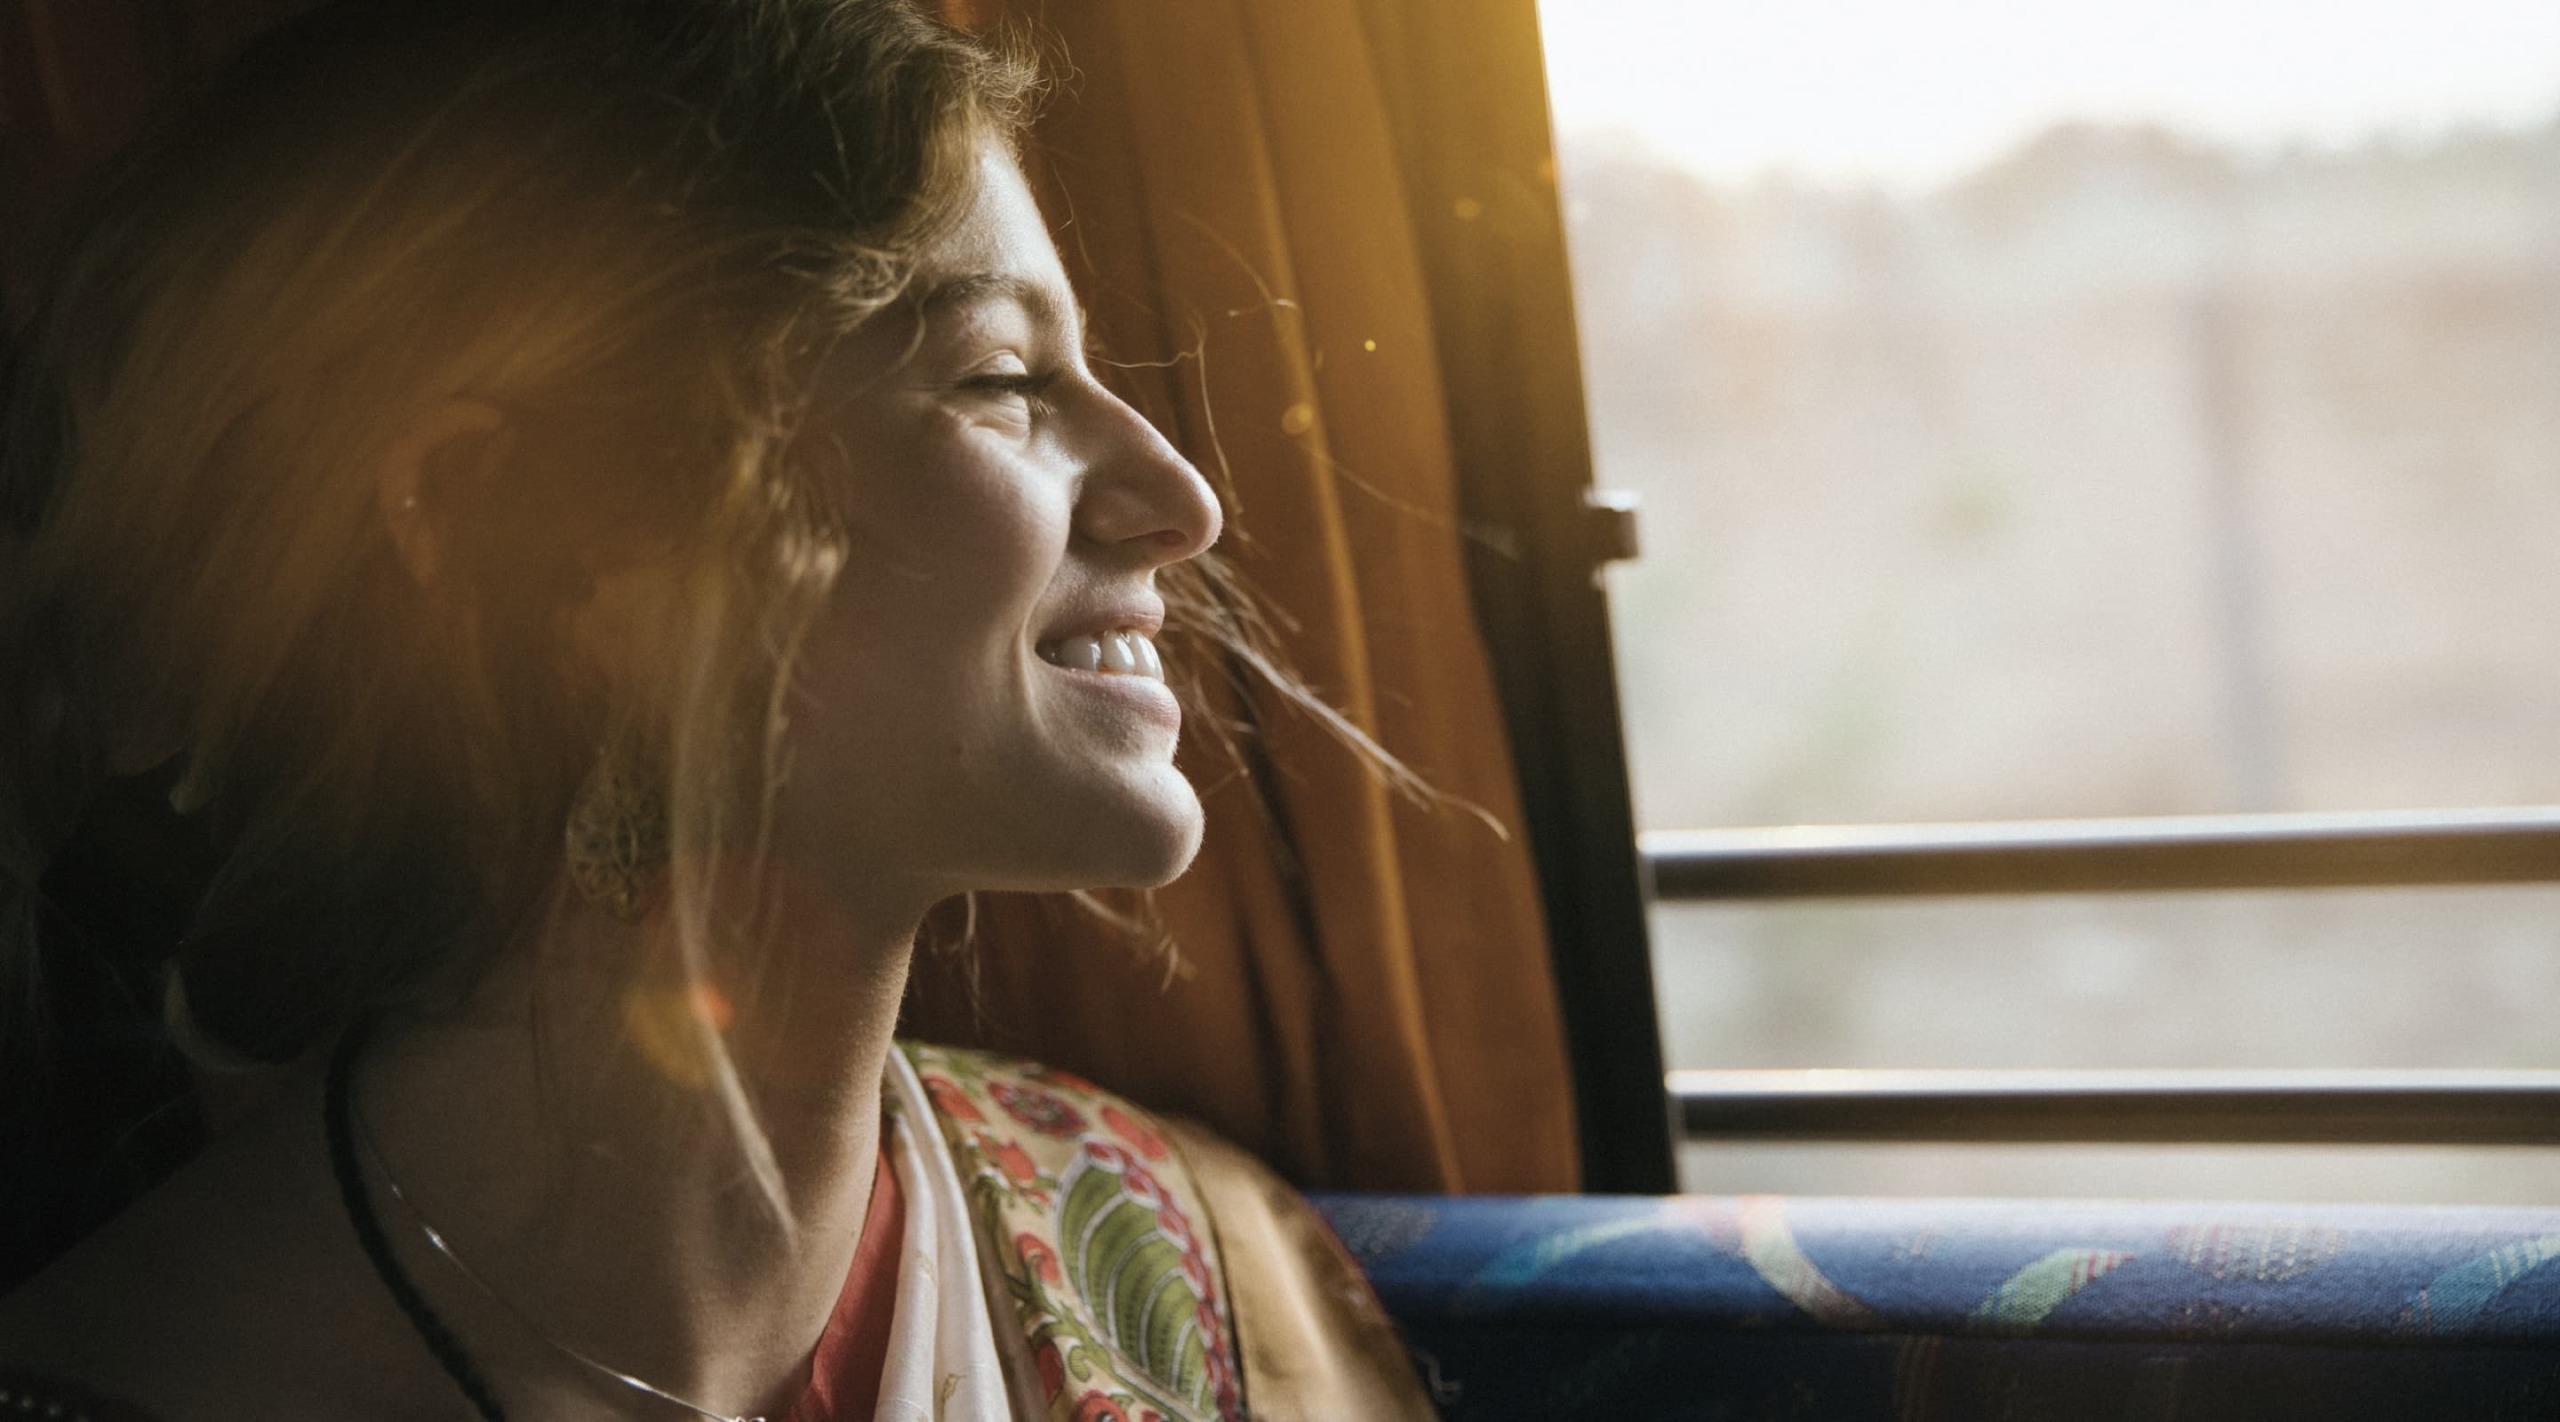 lady in bus smiling